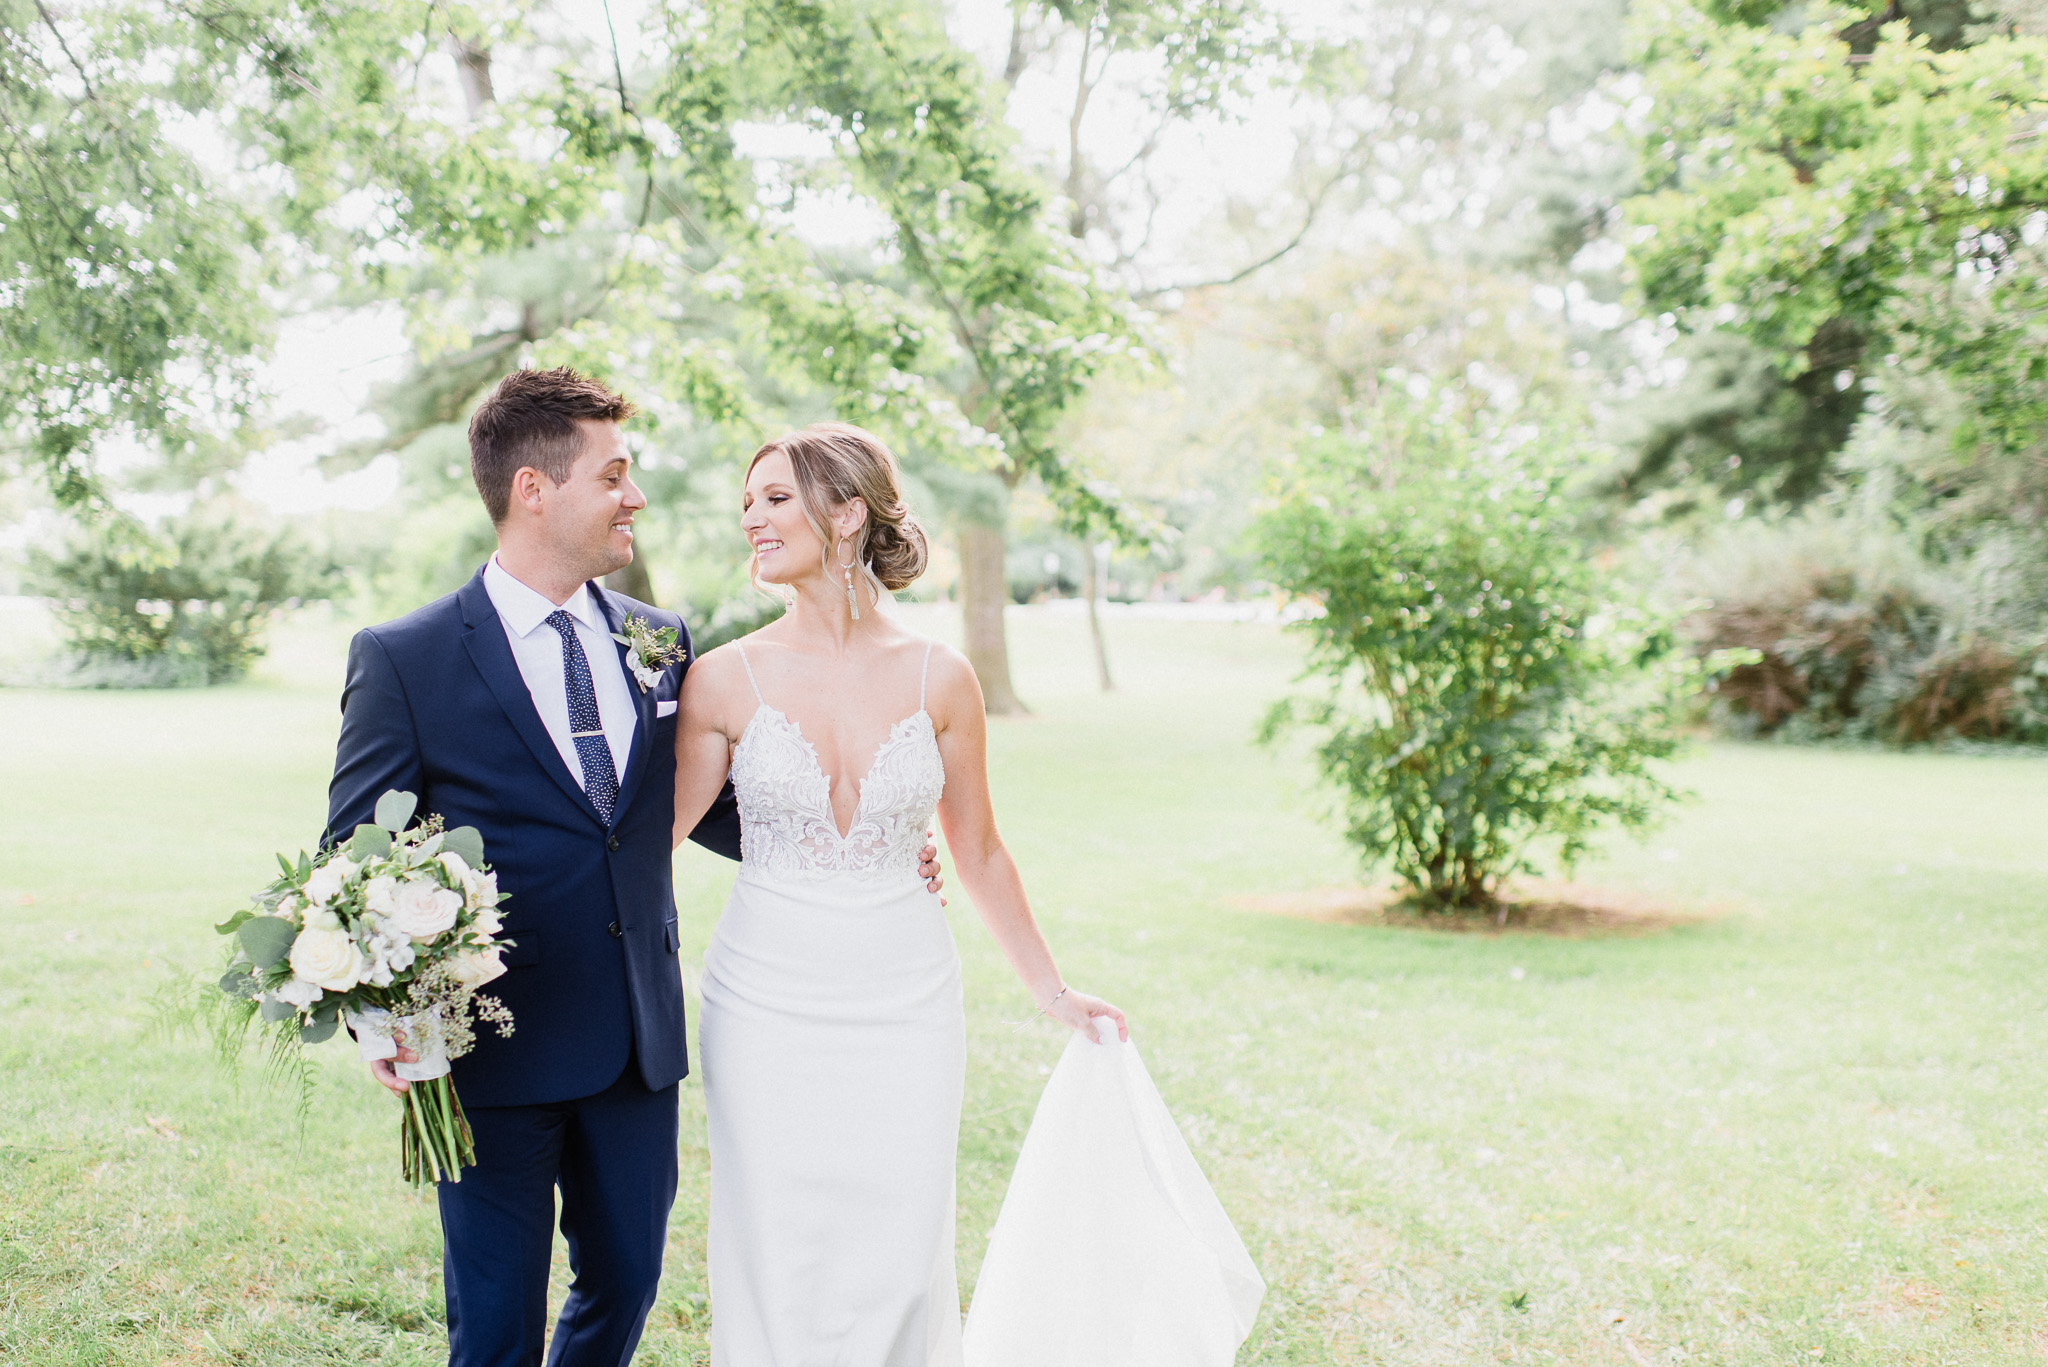 Bride and Groom Portraits at Shell Park by Jenn Kavanagh Photography | Oakville, Ontario Wedding